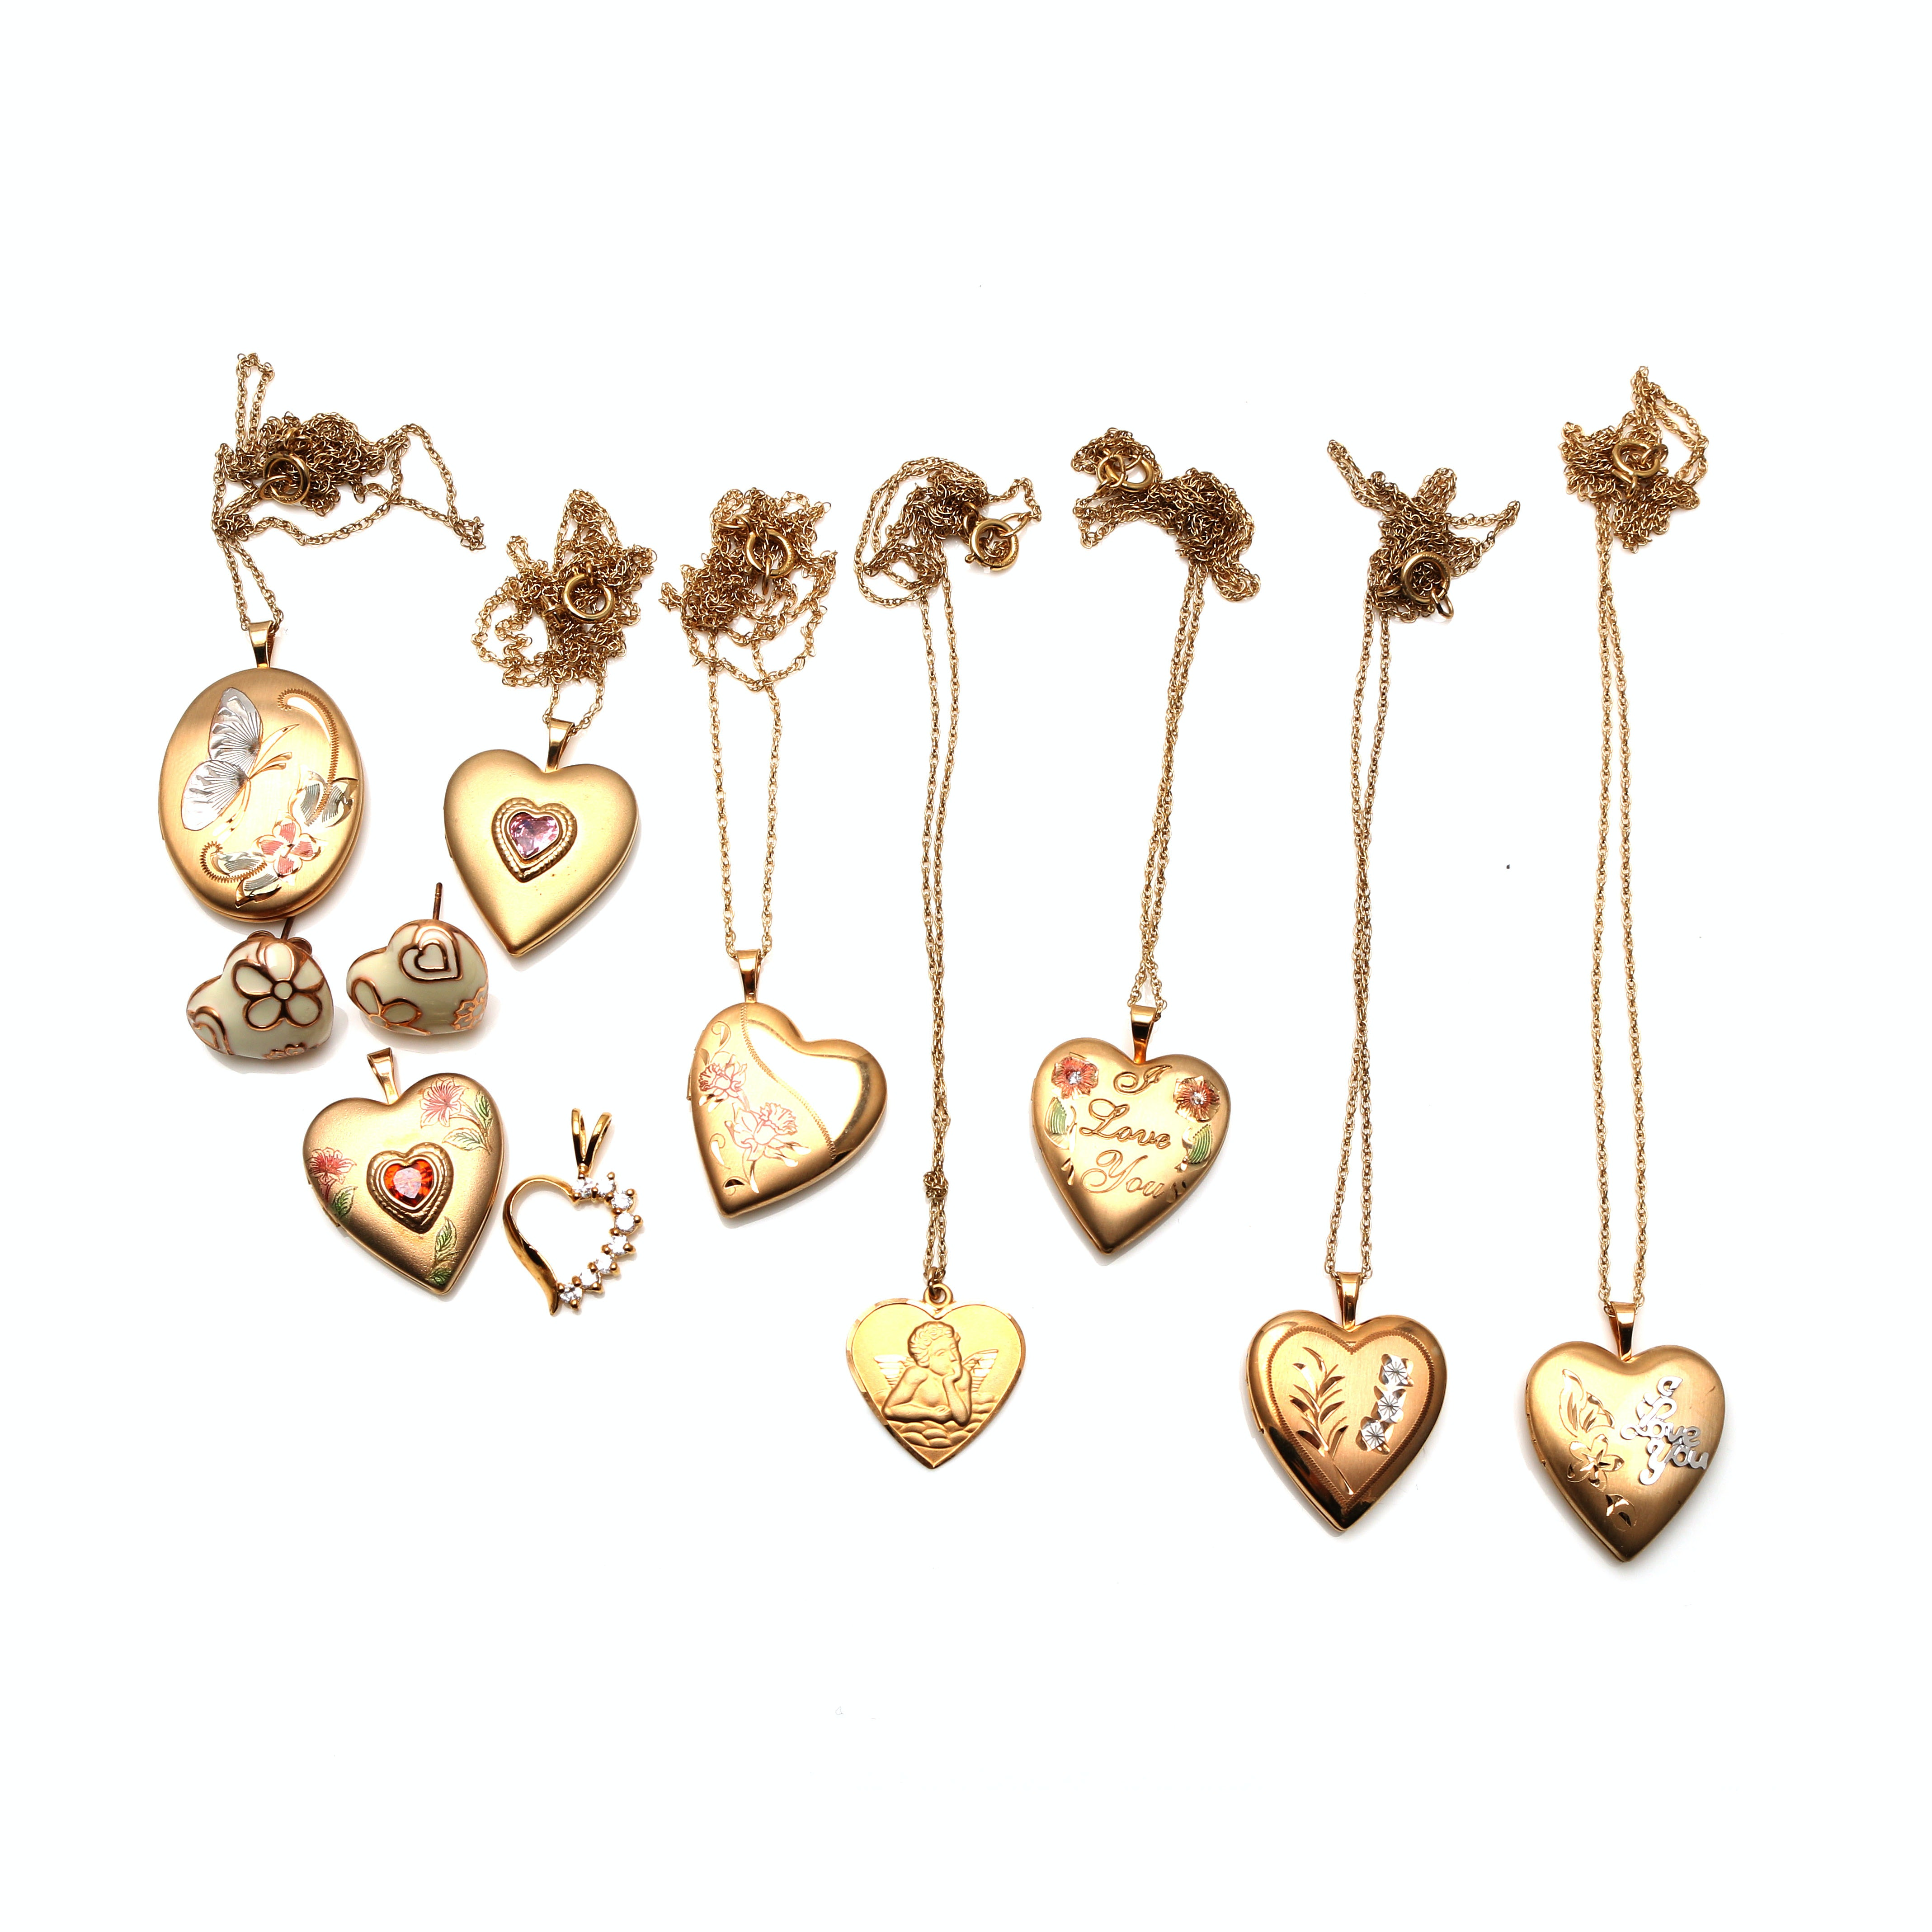 Assortment of 14K Gold Filled Jewelry Including Sterling Silver